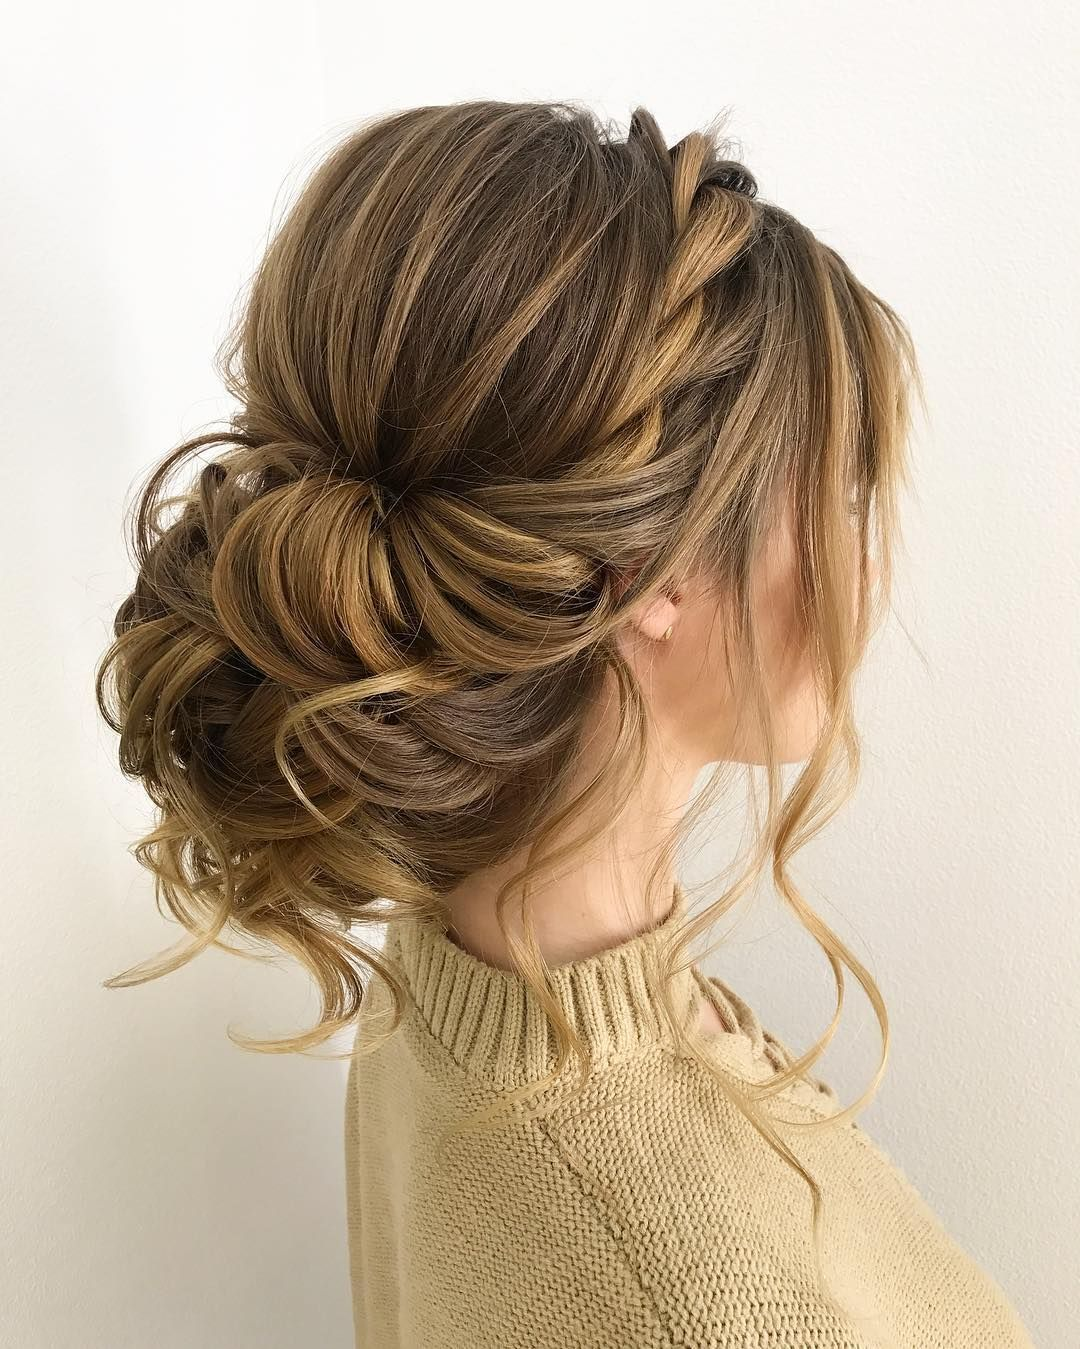 Wedding Hairstyle With Braids: Gorgeous Wedding Updo Hairstyles That Will Wow Your Big